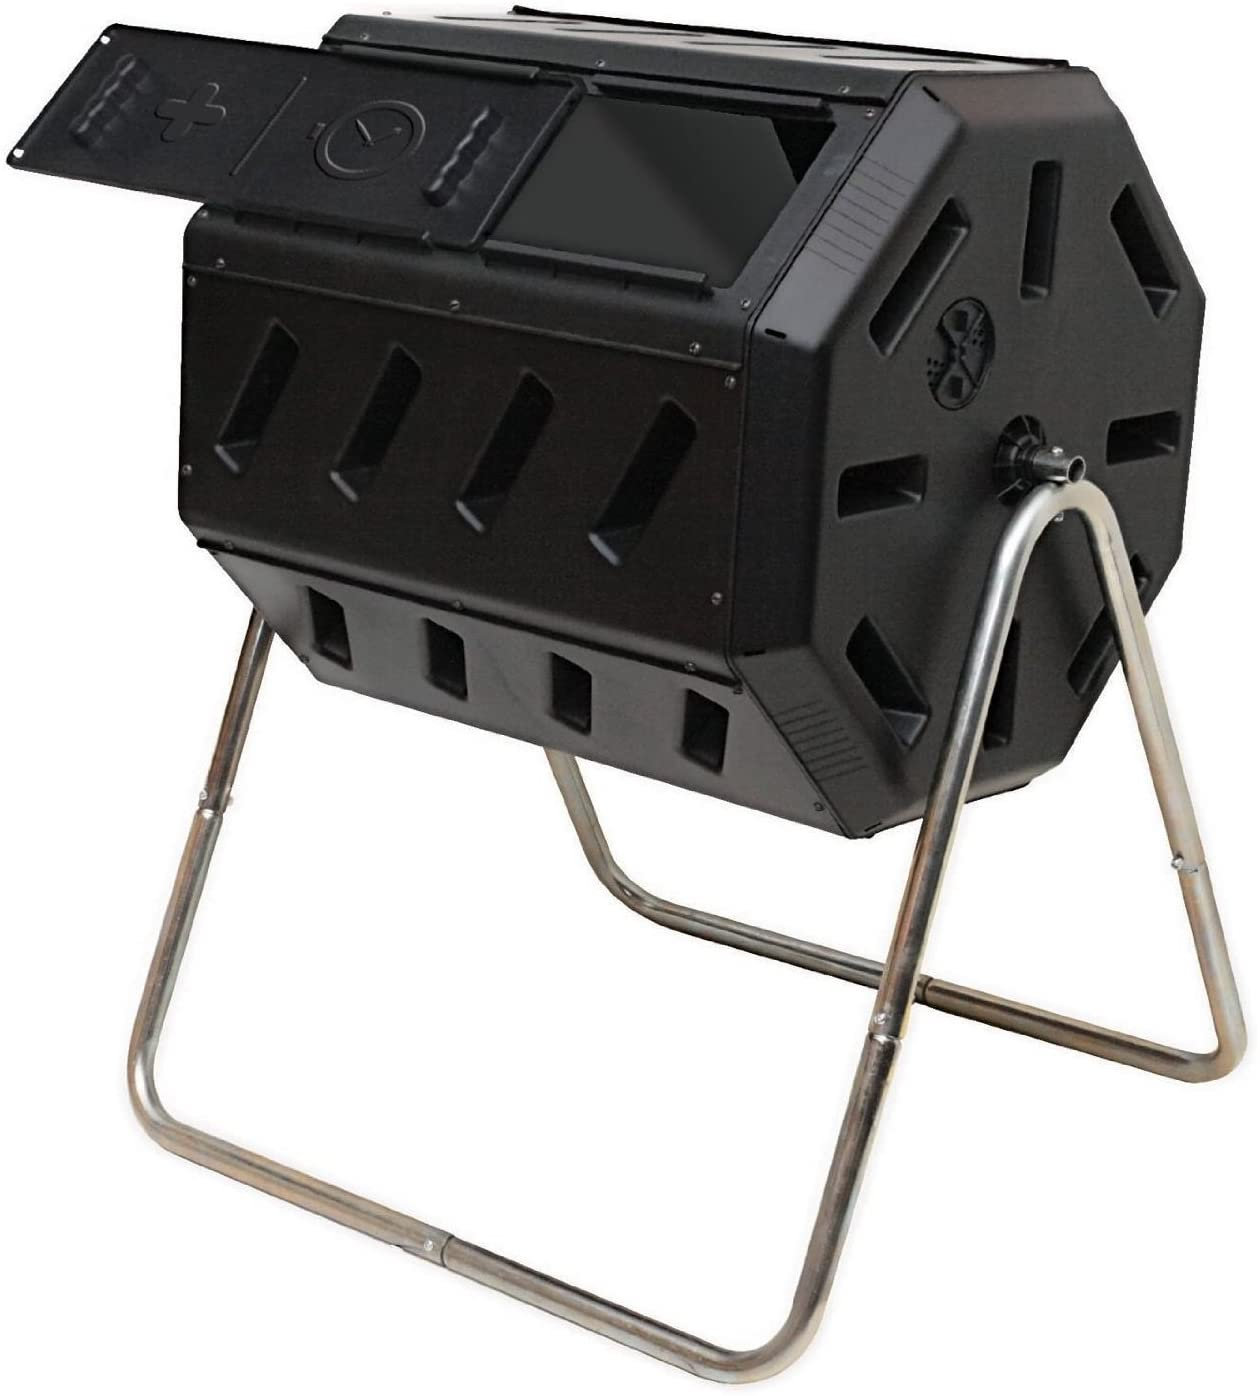 FCMP Outdoor Compost Tumblers